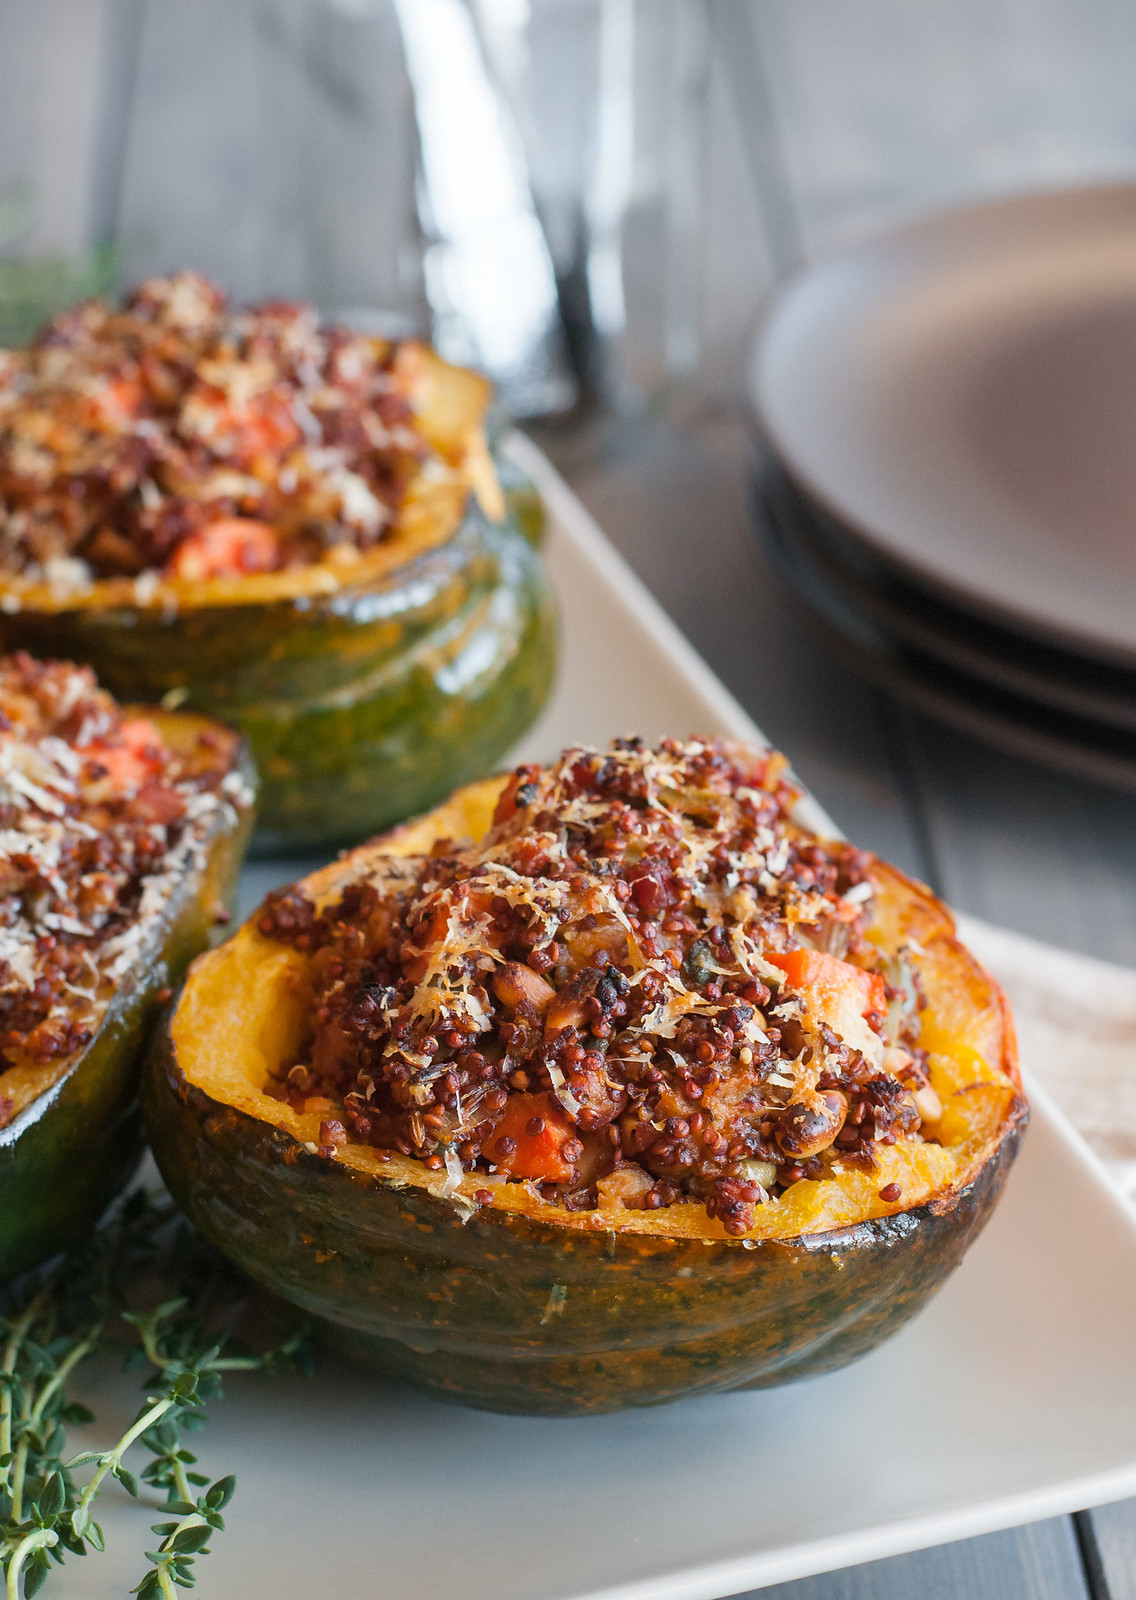 Rustic quinoa stuffed acorn squash - for almost any special diet   #homemade #healthy #comfortfood